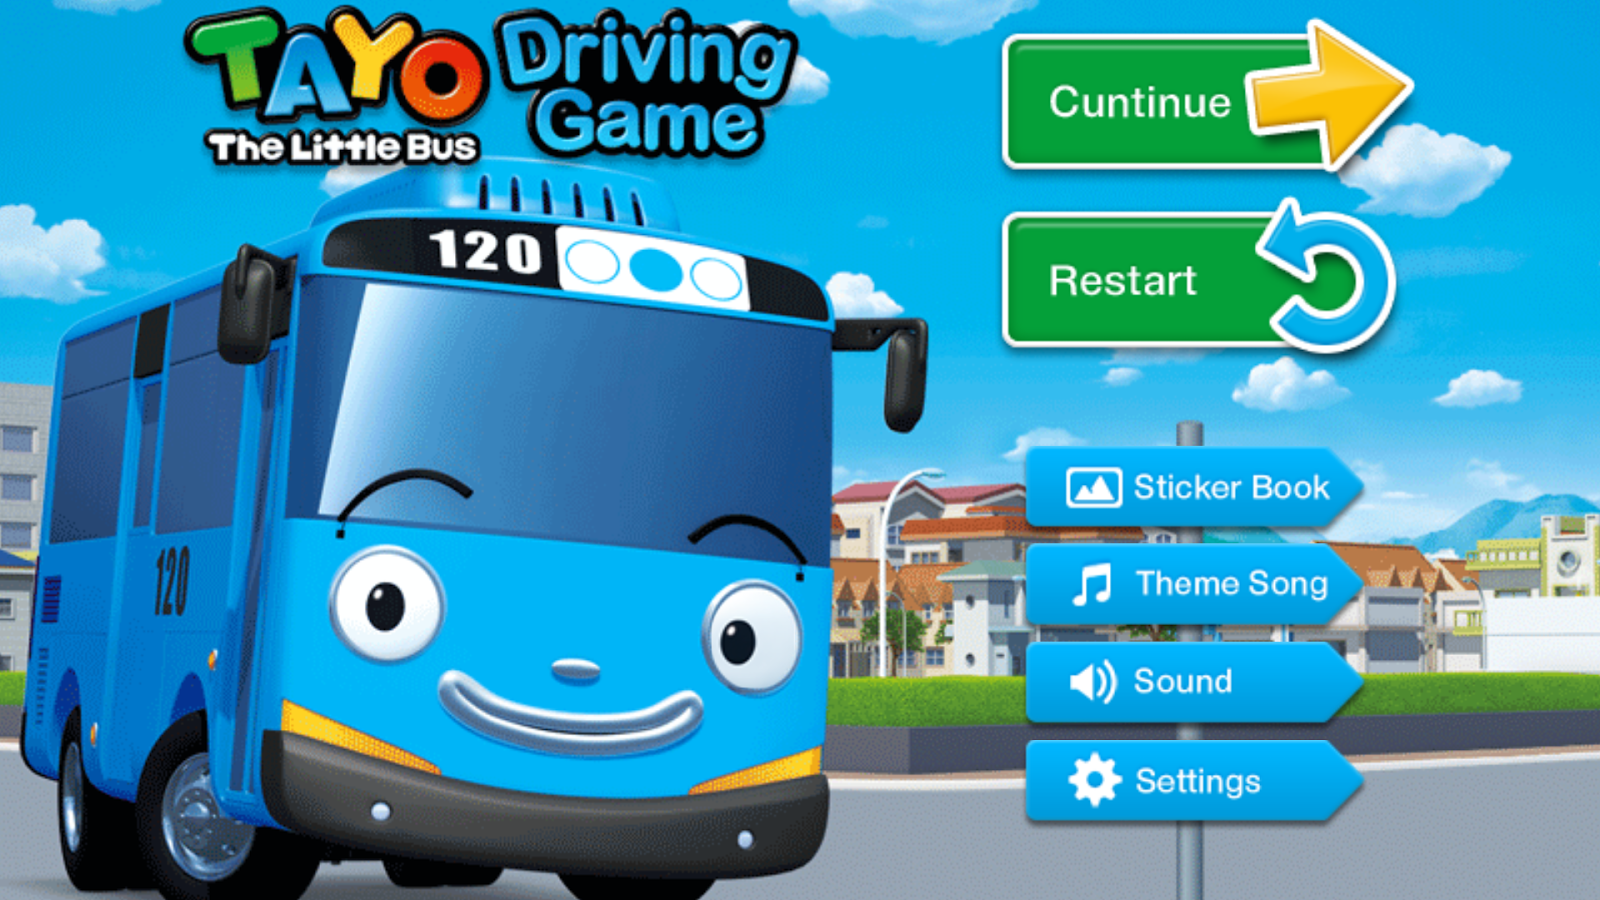 Tayos Driving Game 11 Apk Download Android Education Apps